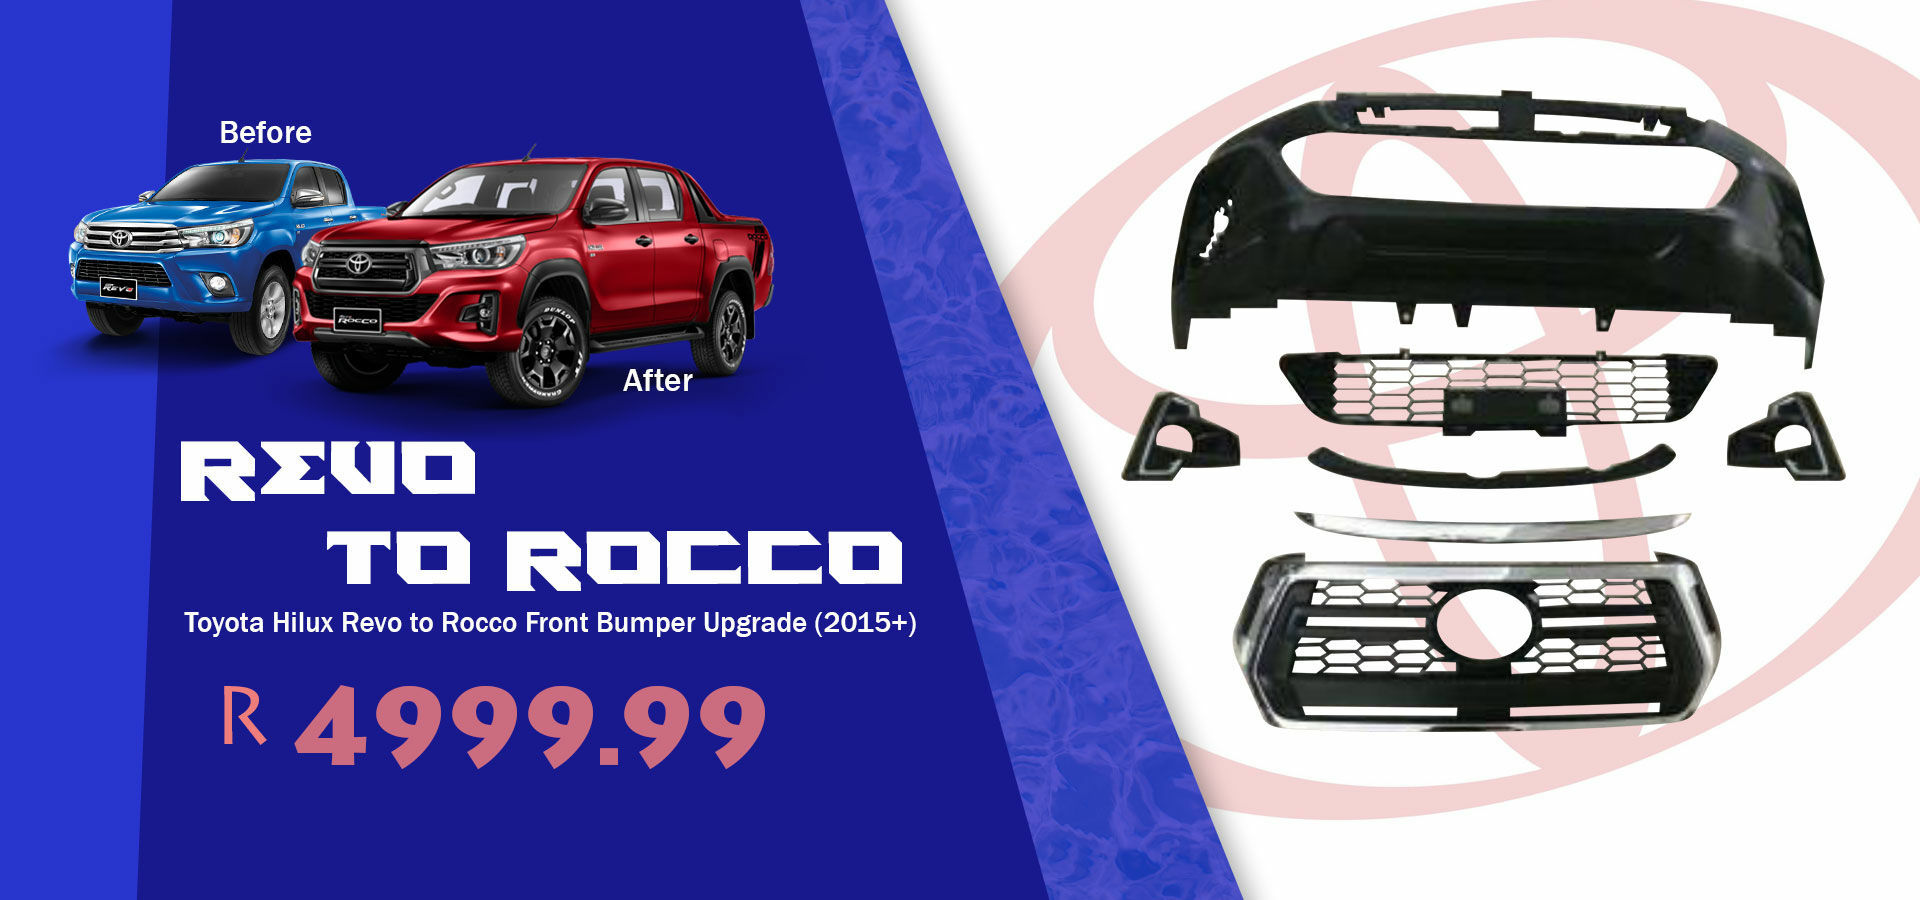 Picture for category Toyota Hilux Revo to Rocco Front Bumper Upgrade (2015+)